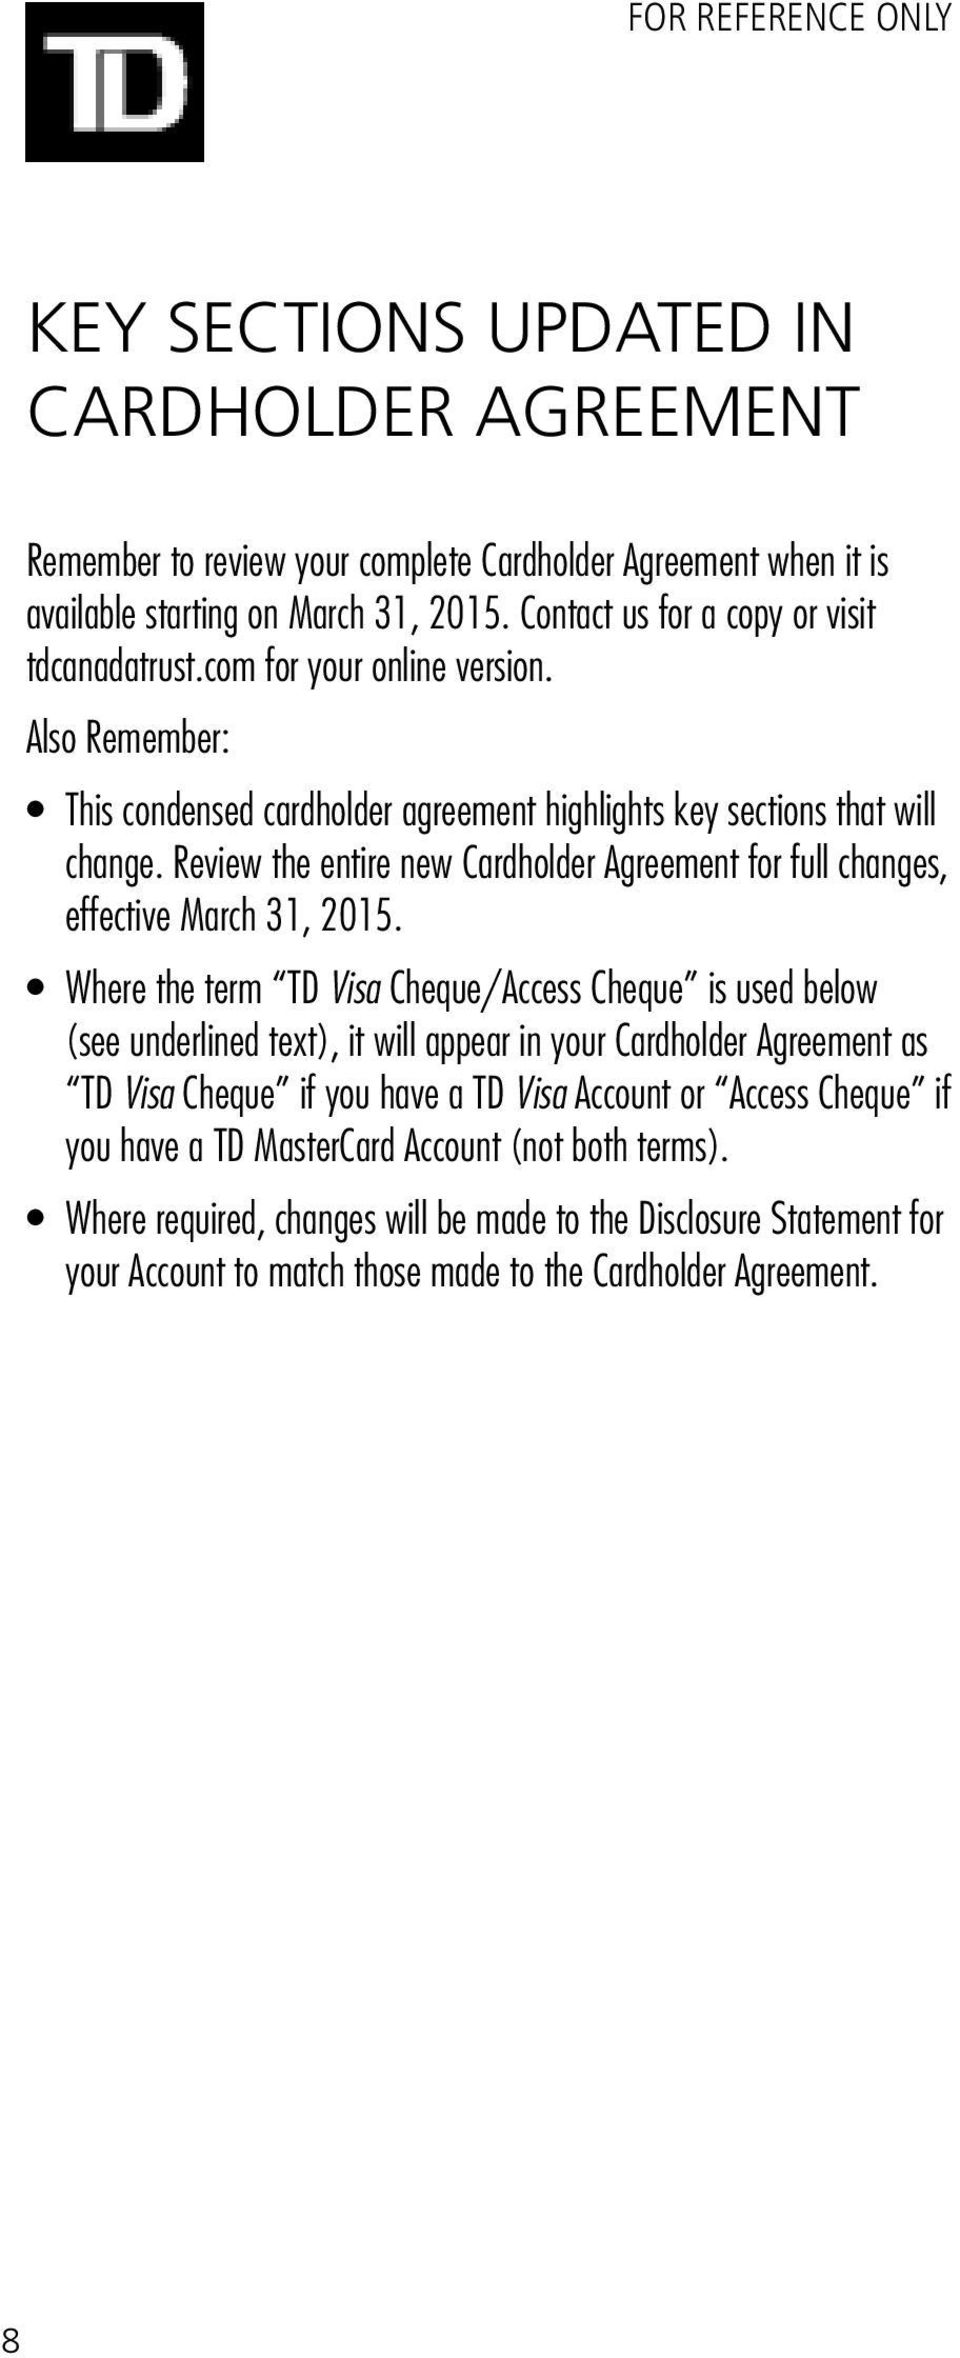 Review the entire new Cardholder Agreement for full changes, effective March 31, 2015.